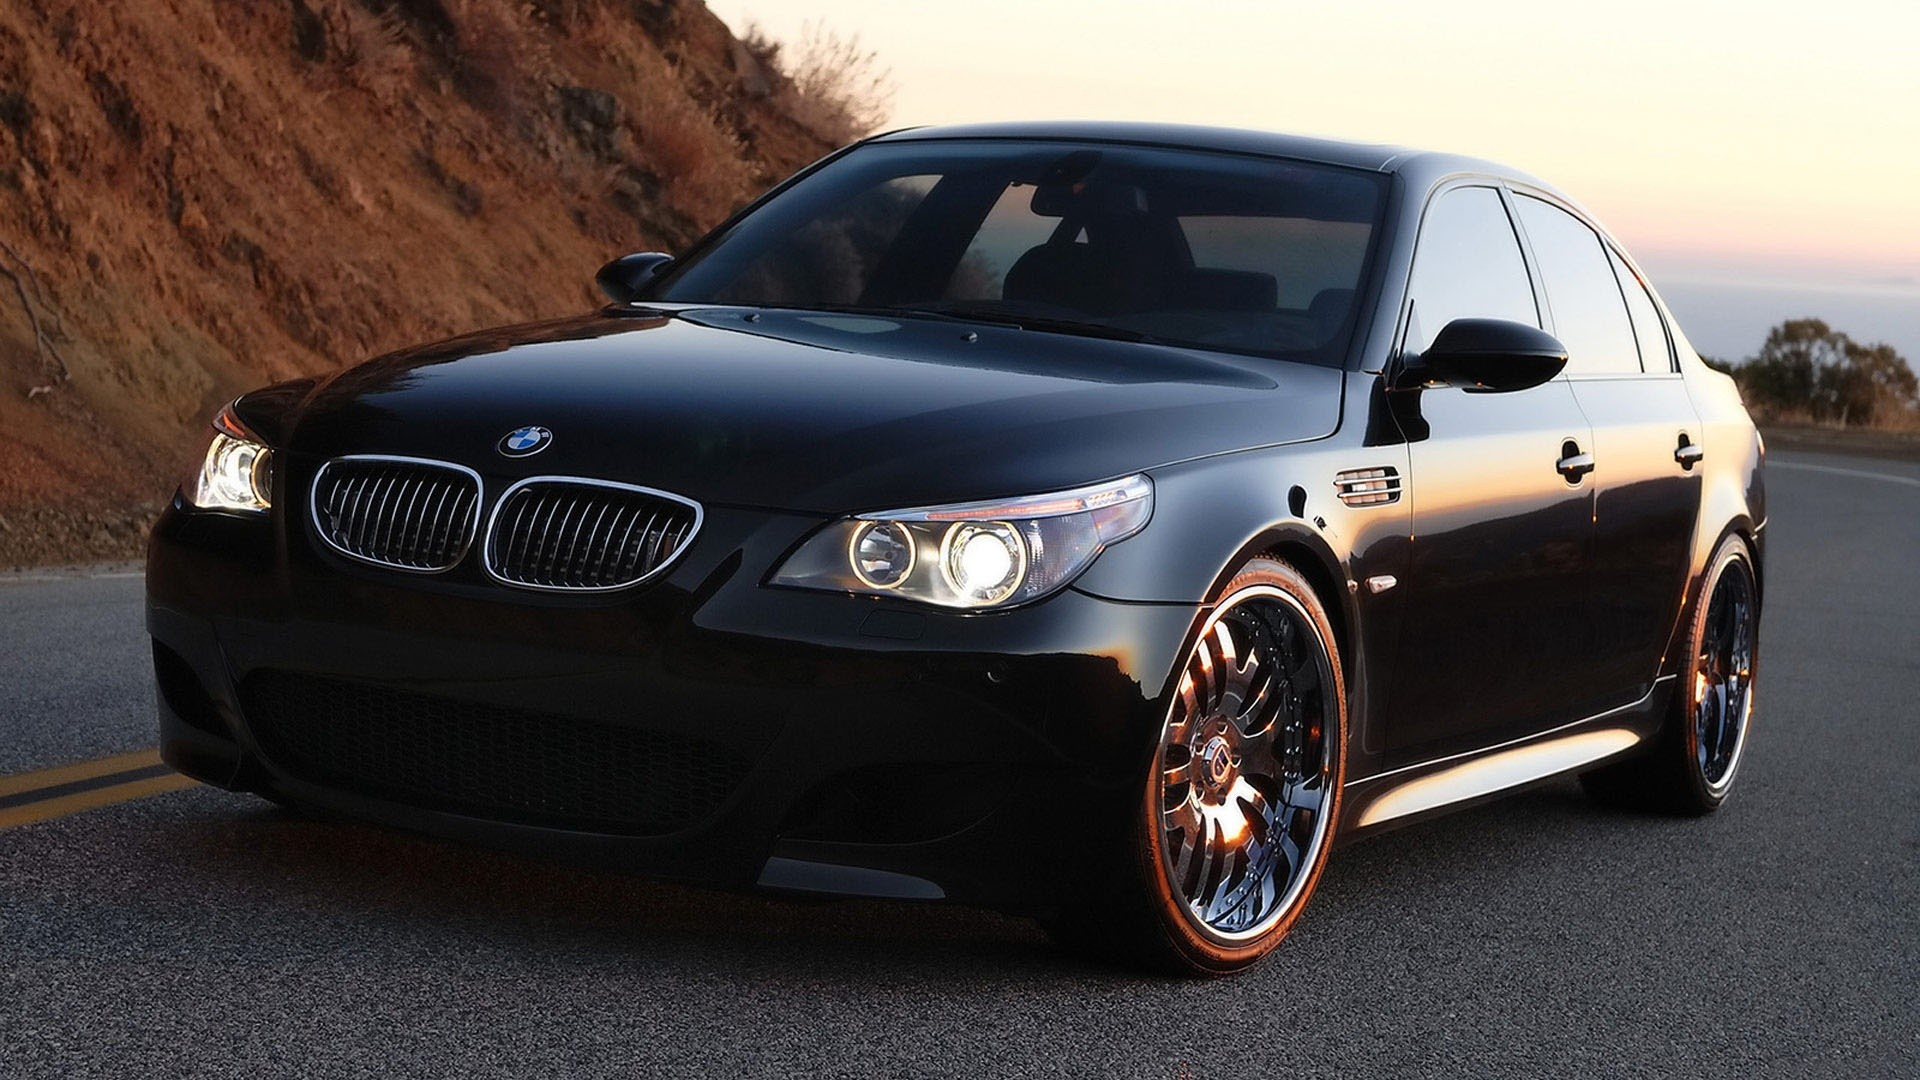 Bmw E60 Wallpapers Vehicles Hq Bmw E60 Pictures 4k Wallpapers 2019